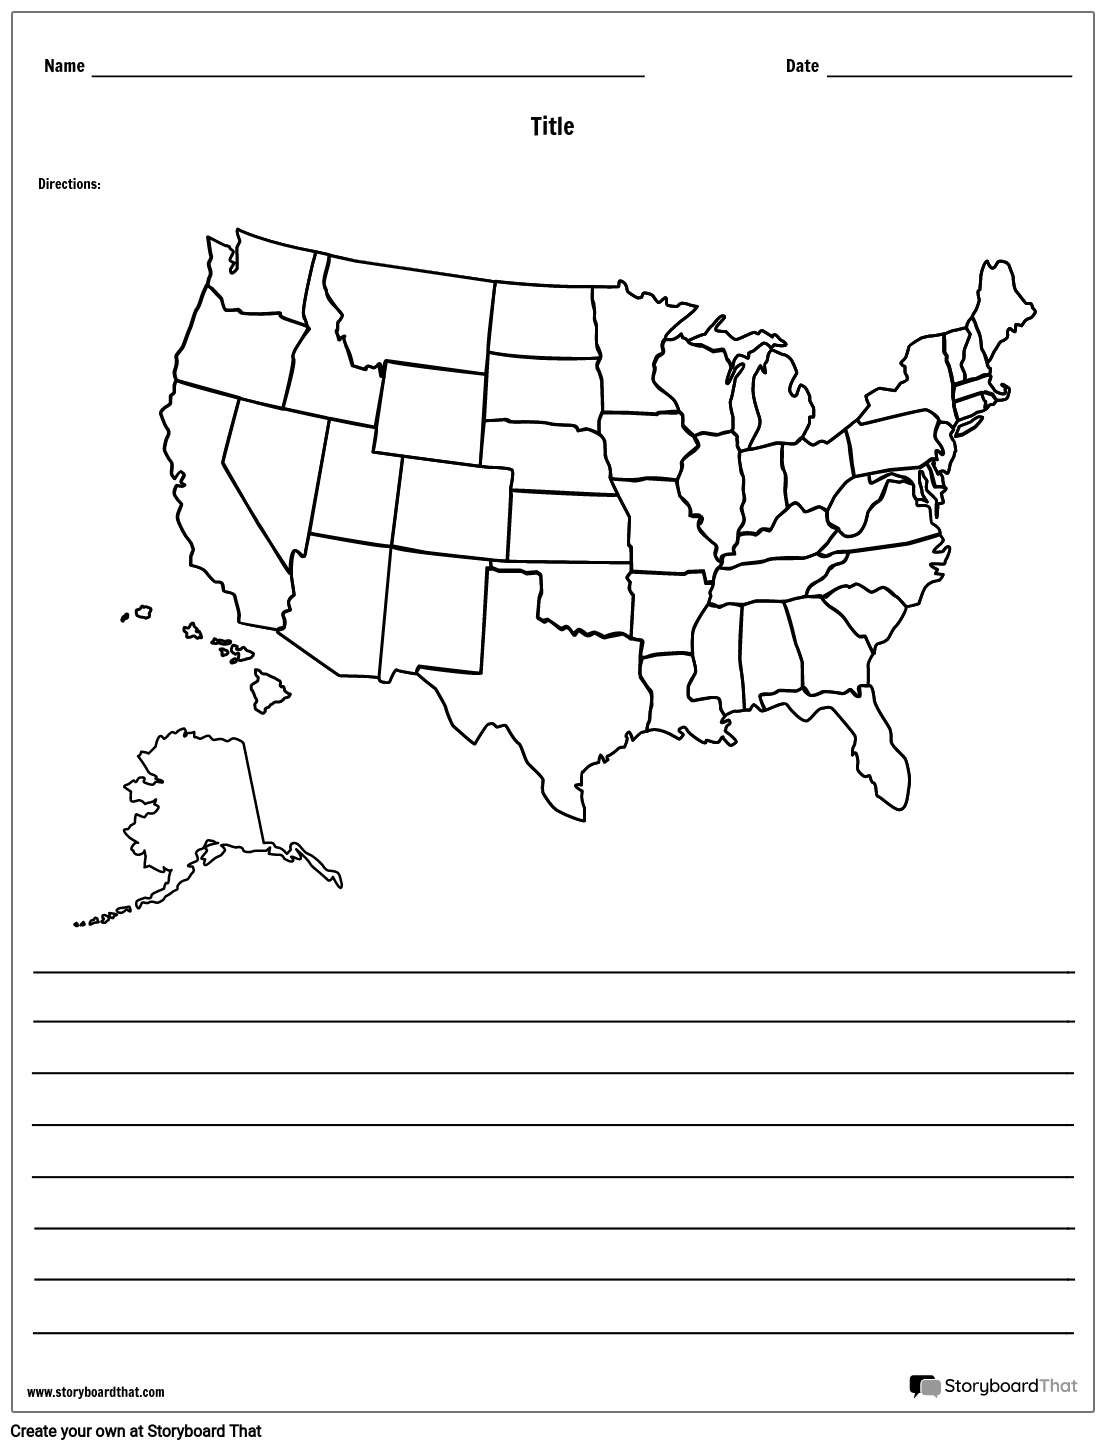 United States Map - With Lines